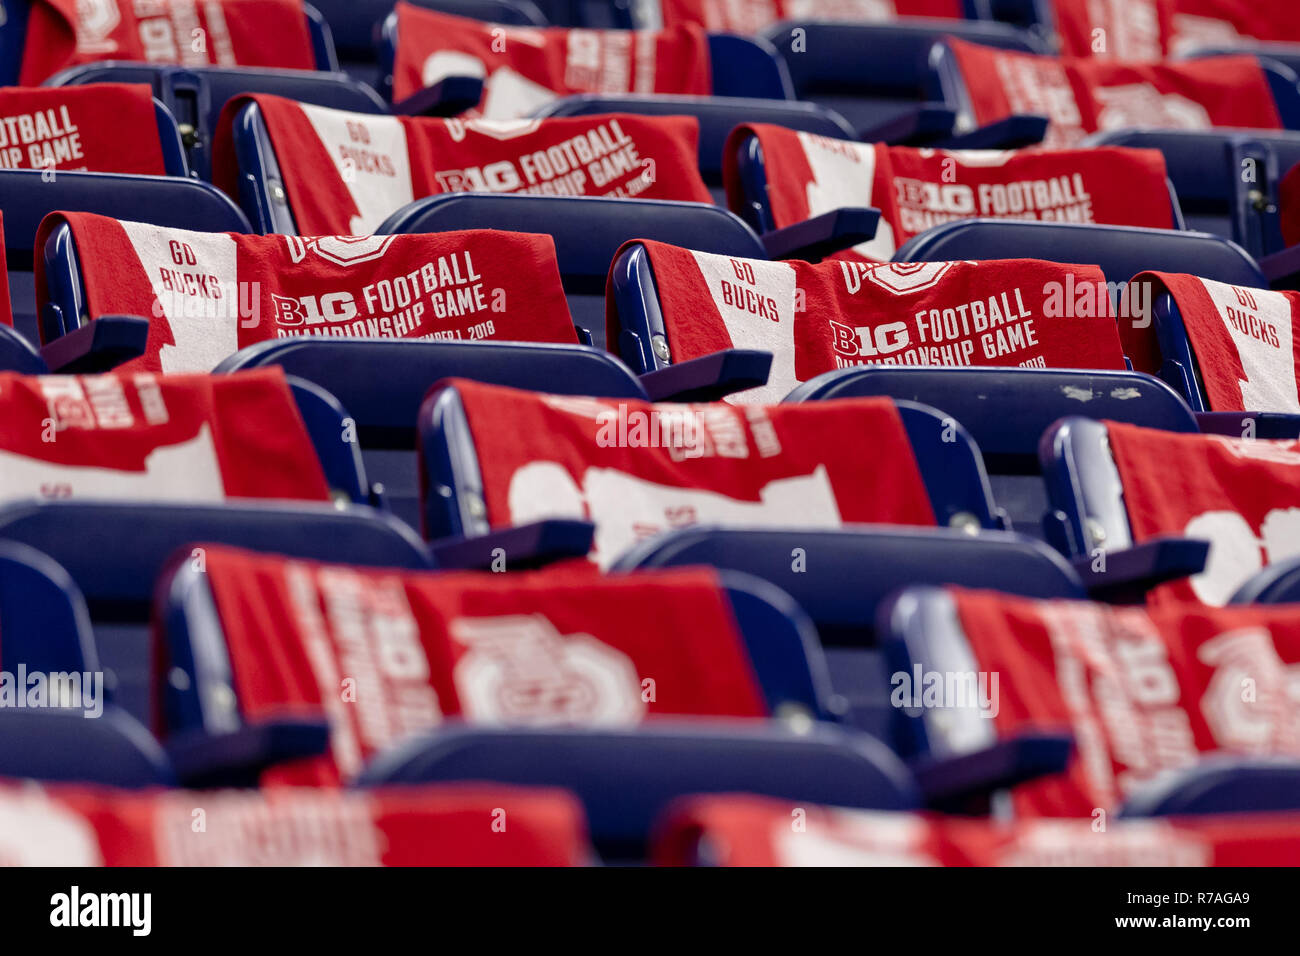 December 1st, 2018: B1G football championship game towels drape across seats before the 2018 Big Ten Championship game between the Northwestern Wildcats and the Ohio State Buckeyes on December 01, 2018 at Lucas Oil Stadium in Indianapolis, IN. Adam Lacy/CSM. - Stock Image